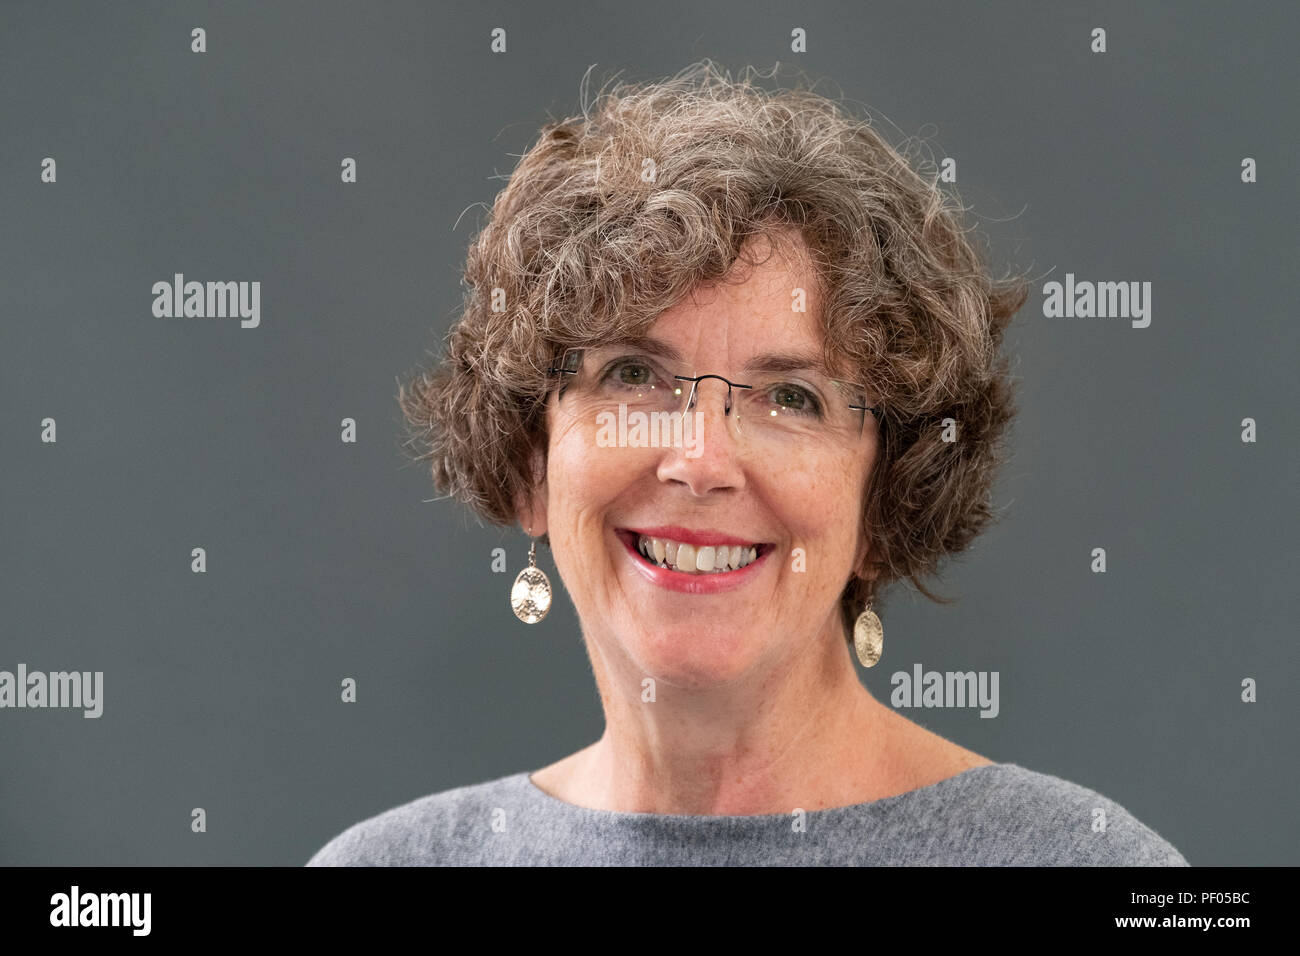 Edinburgh, Scotland, UK; 18 August, 2018. Pictured; Jane Robinson, a British social historian specialising in the study of women pioneers in various fields. Her book 'Hearts and Minds', explores the Great Pilgrimage of 1913 which saw thousands of women descend on London and demand to be heard. Credit: Iain Masterton/Alamy Live News - Stock Image